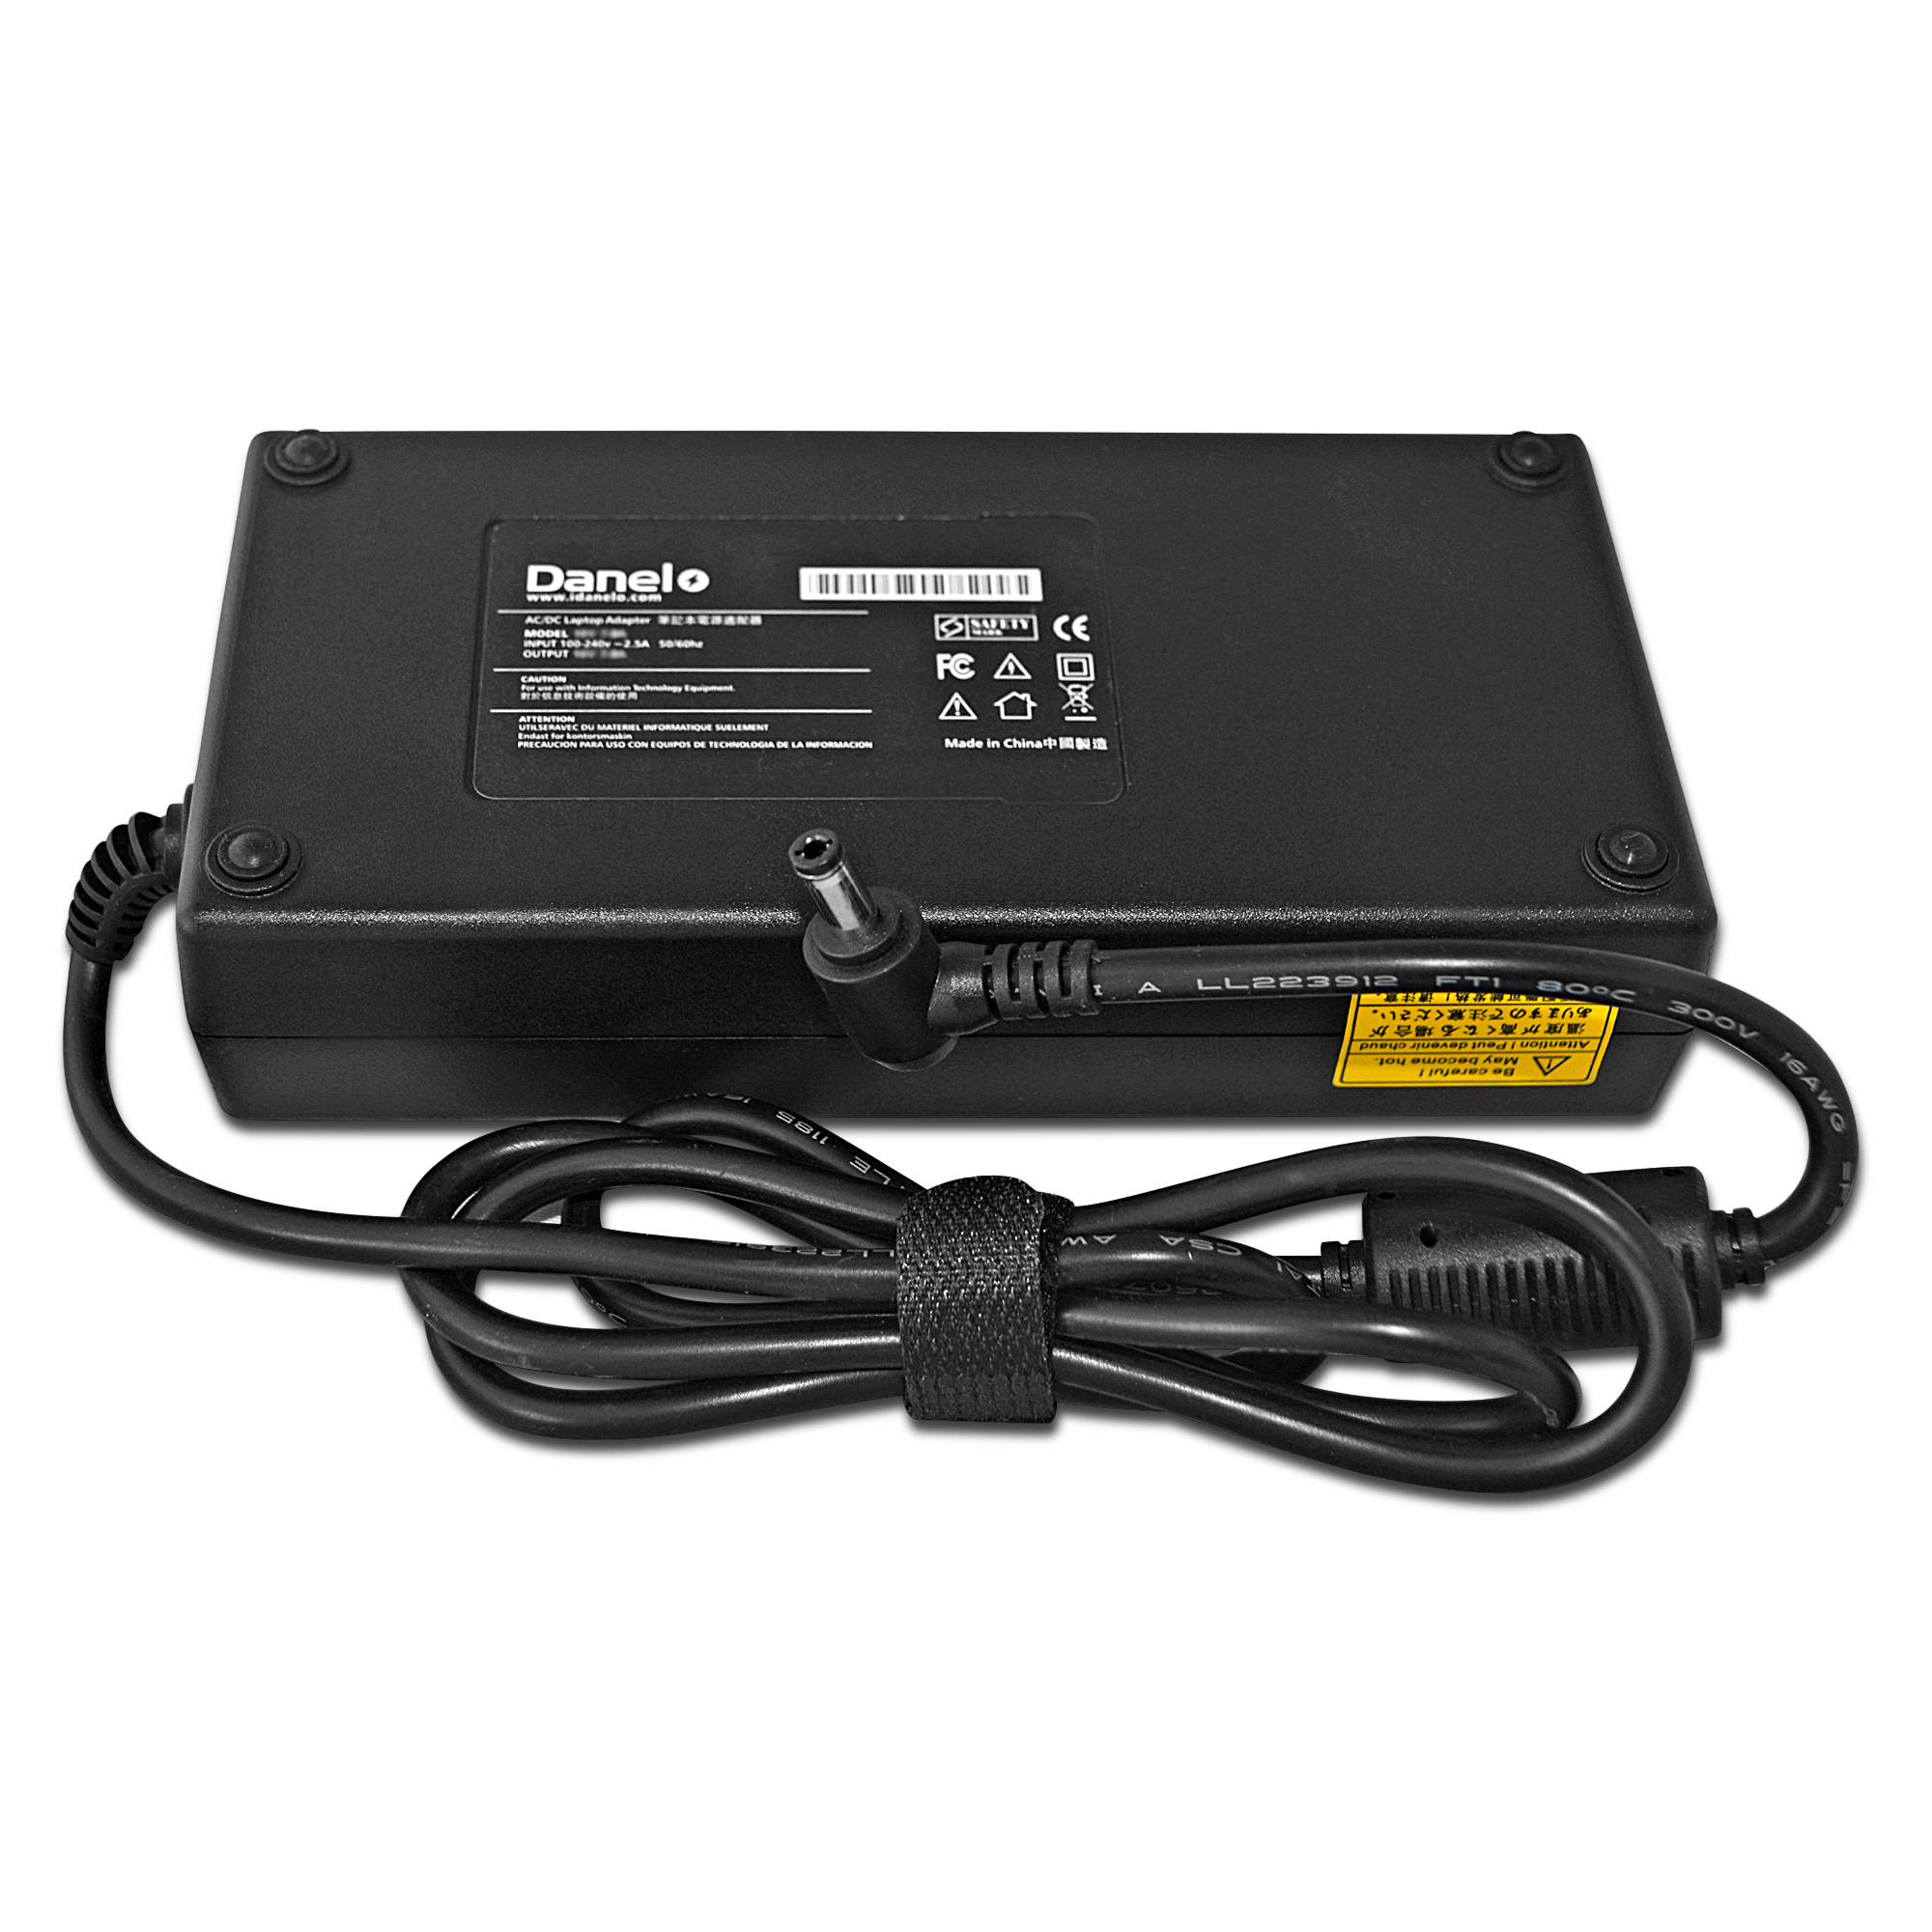 Asus Part Number N180w-01 Laptop Charger